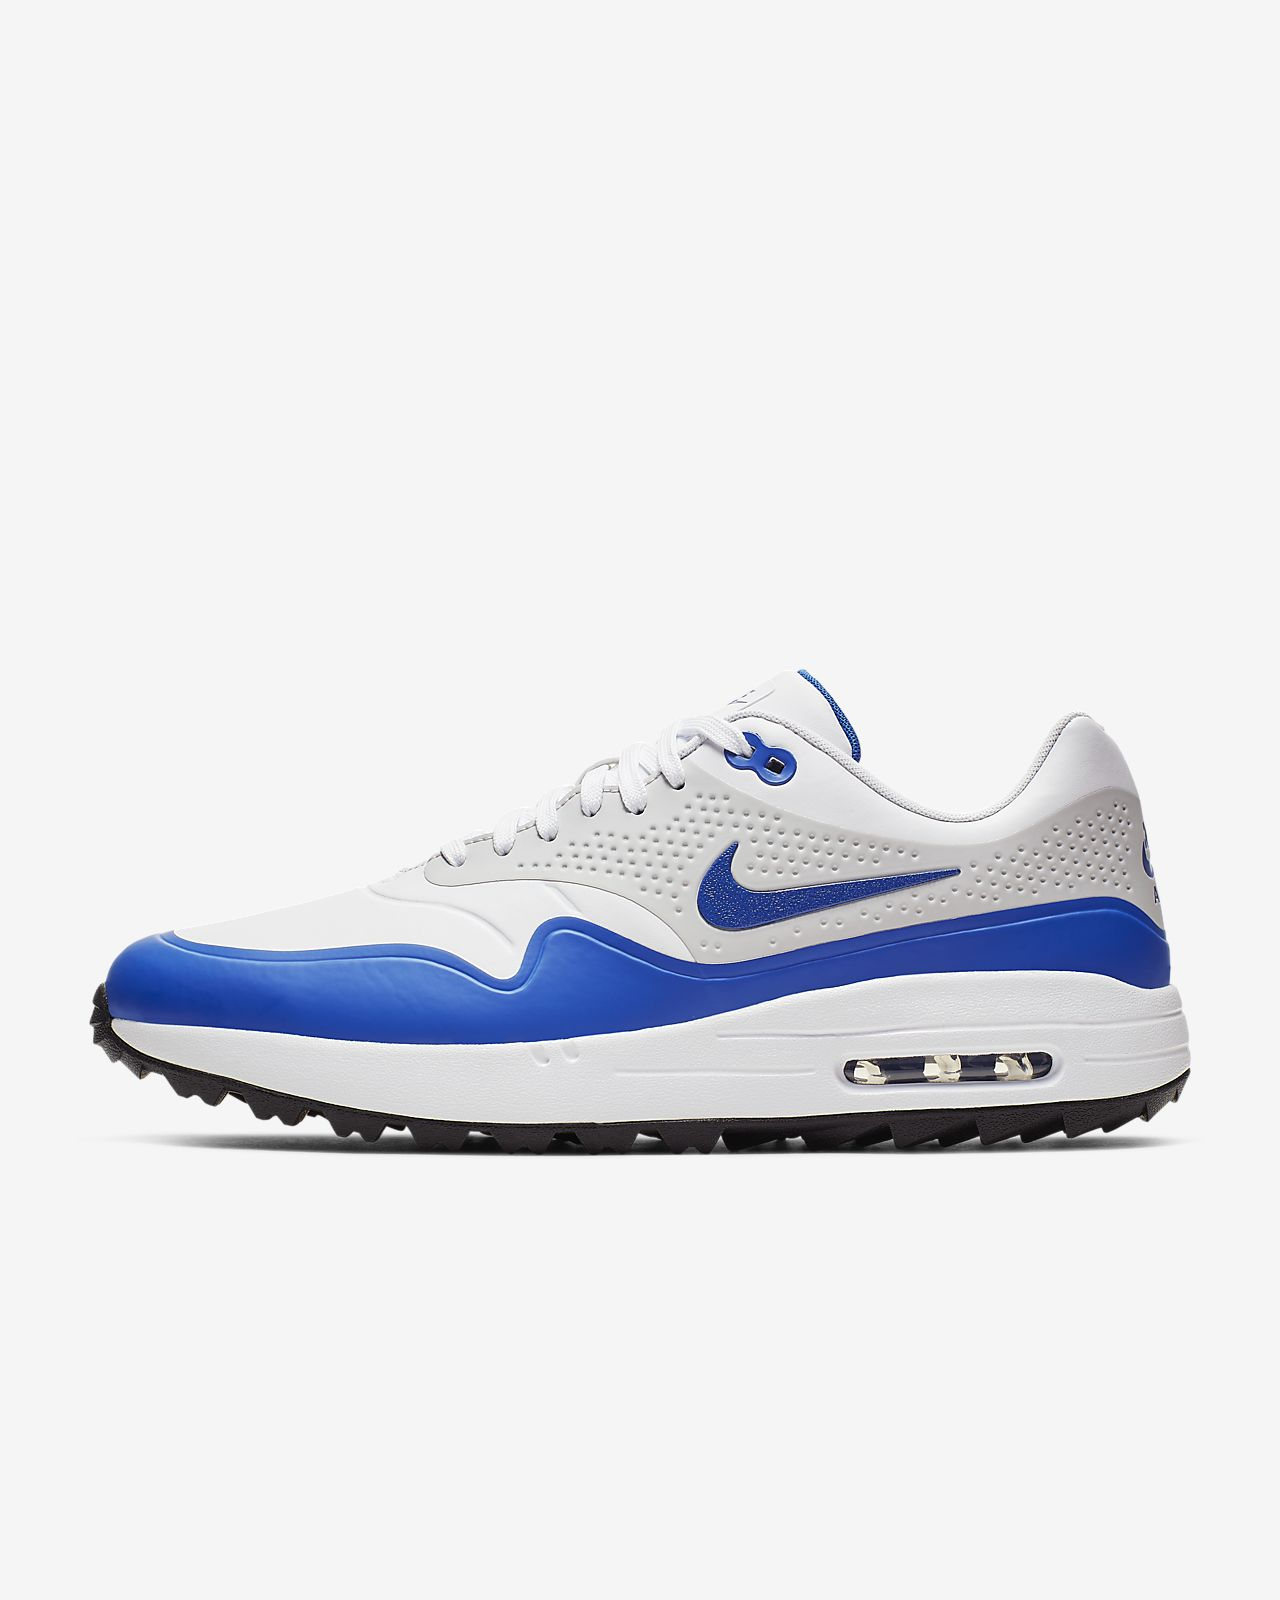 7d6133eae437 Nike Air Max 1 G Men s Golf Shoe. Nike.com